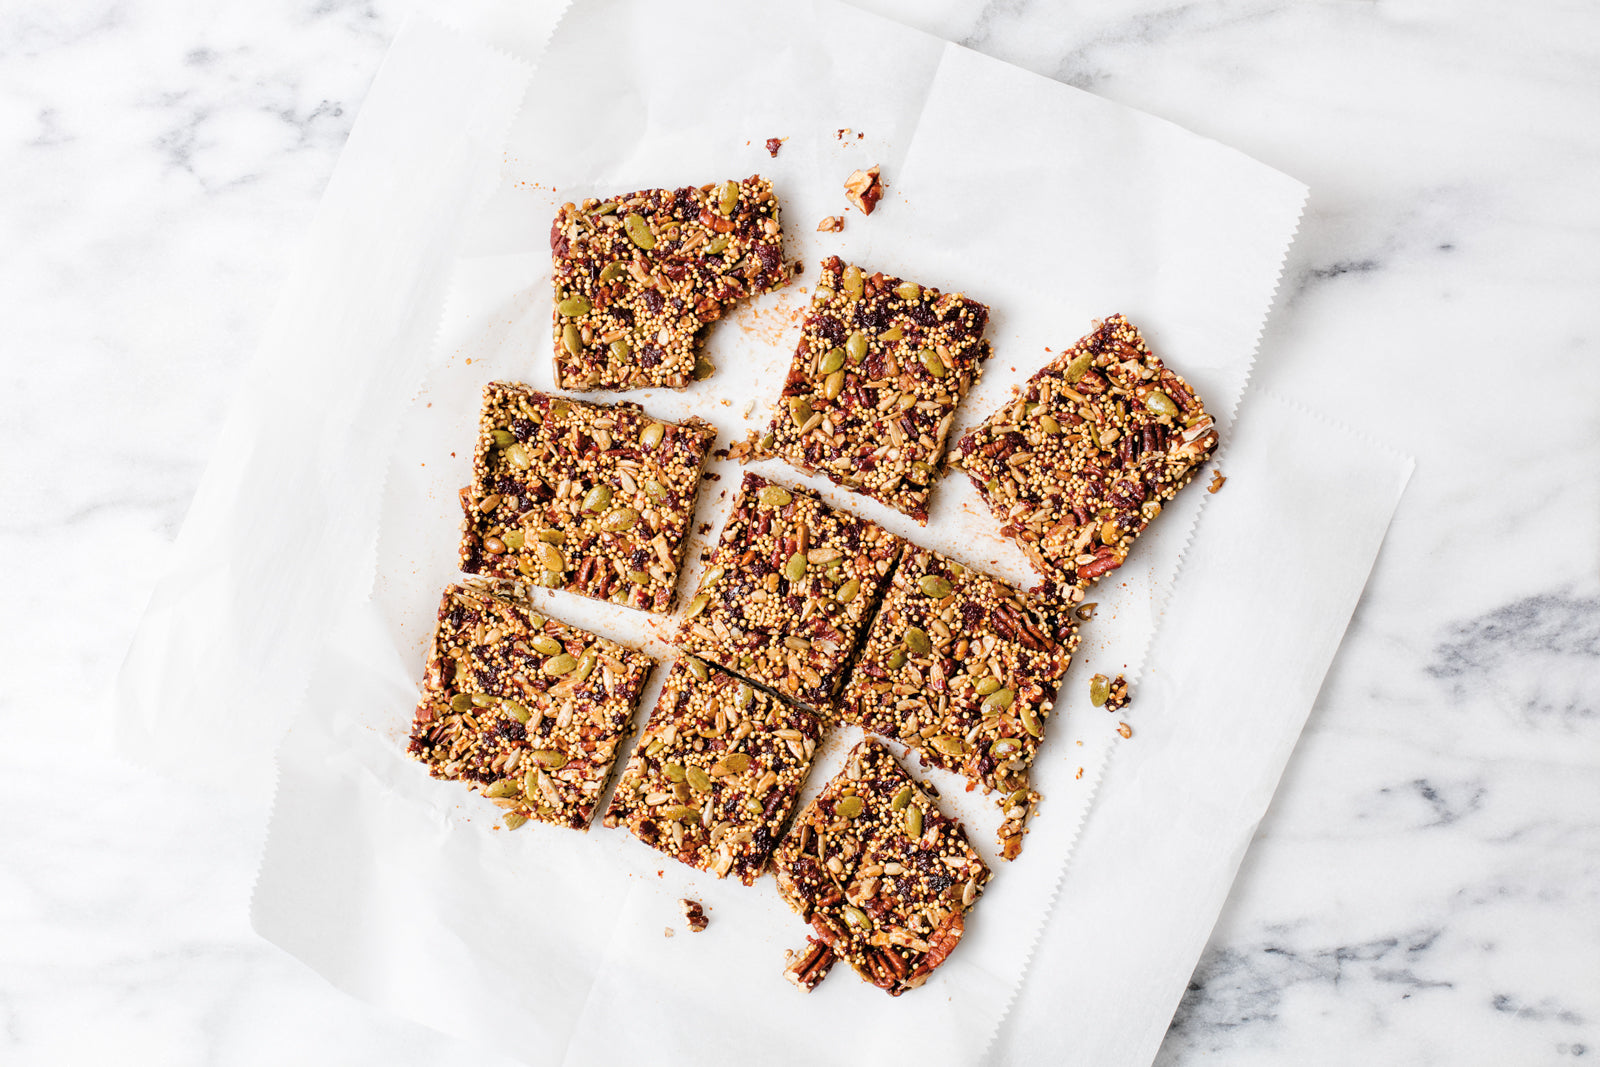 Cherry millet bars recipe from rocket fuel